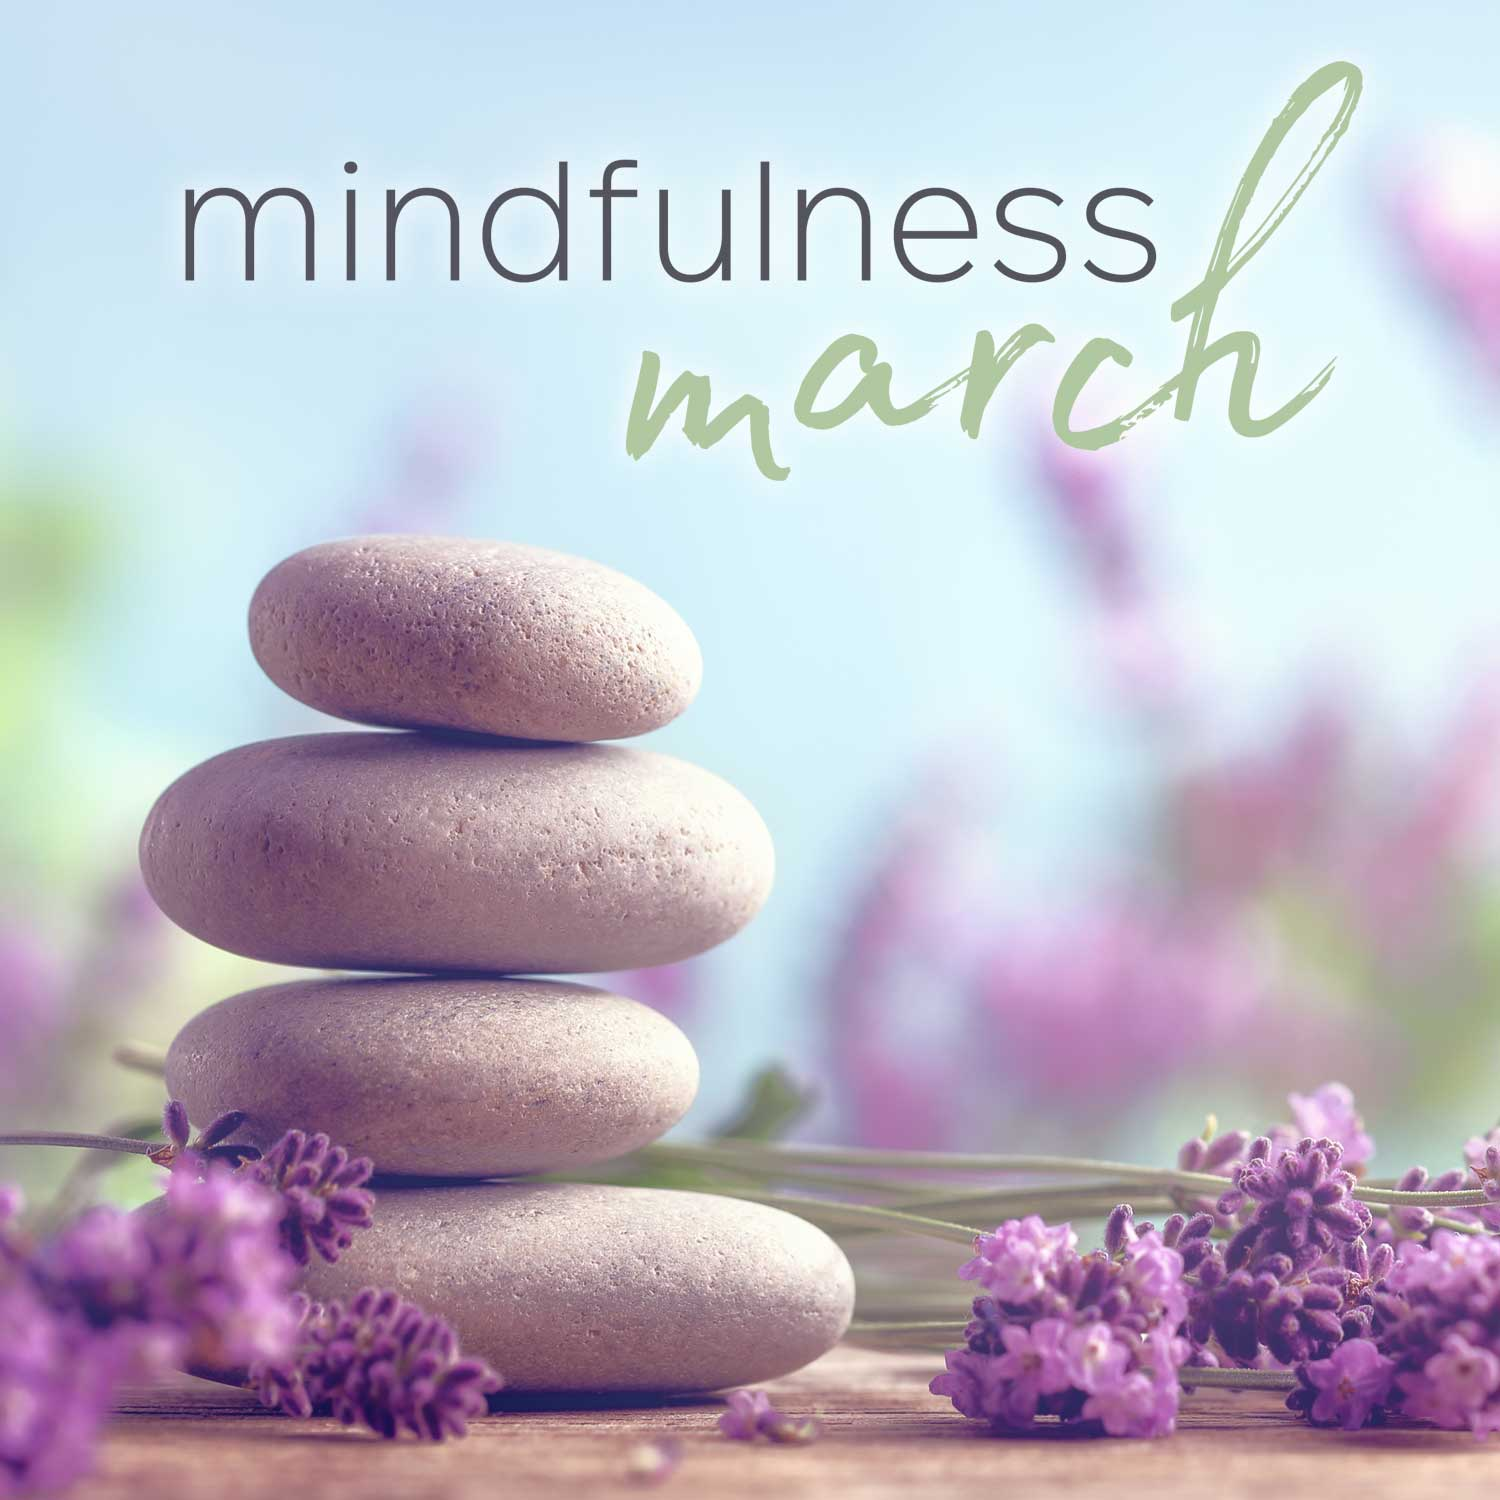 Year of Health 2017 - Mindfulness March